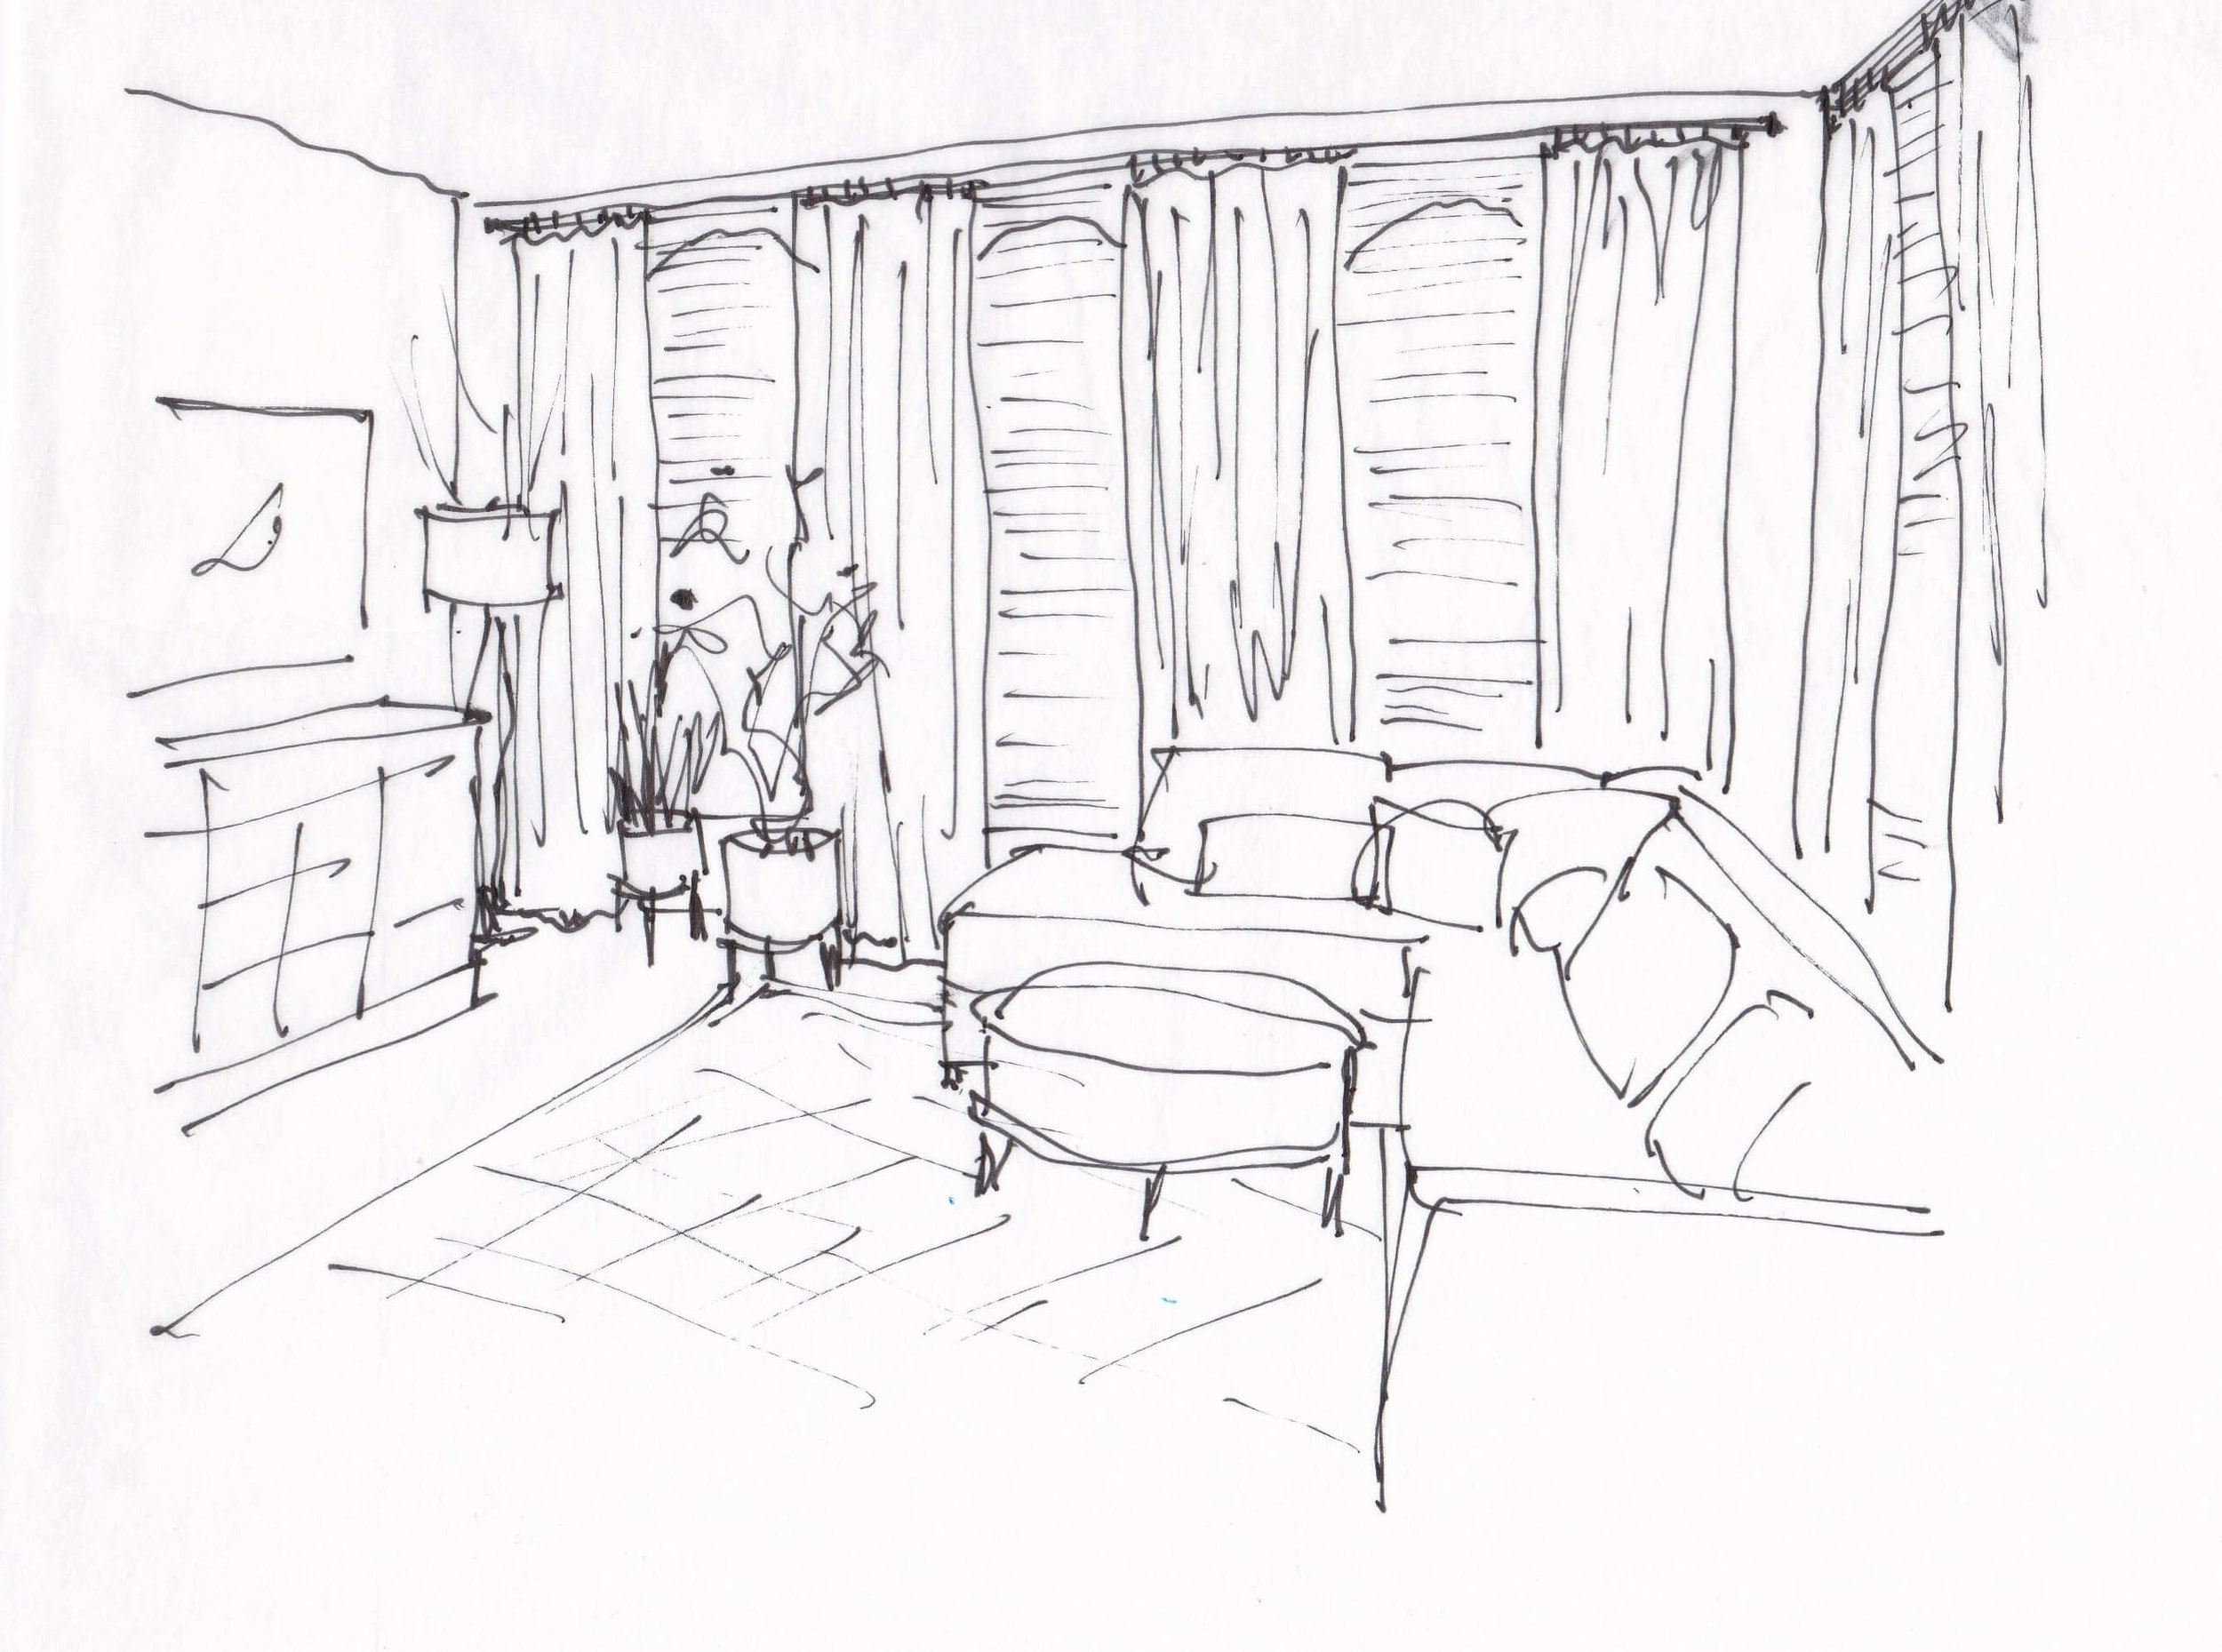 Design Sketch of living room for an email design consultation | Window treatments and furnishings suggested help complete this room. Carla Aston, Designer #designsketch #livingroomideas #walldecor